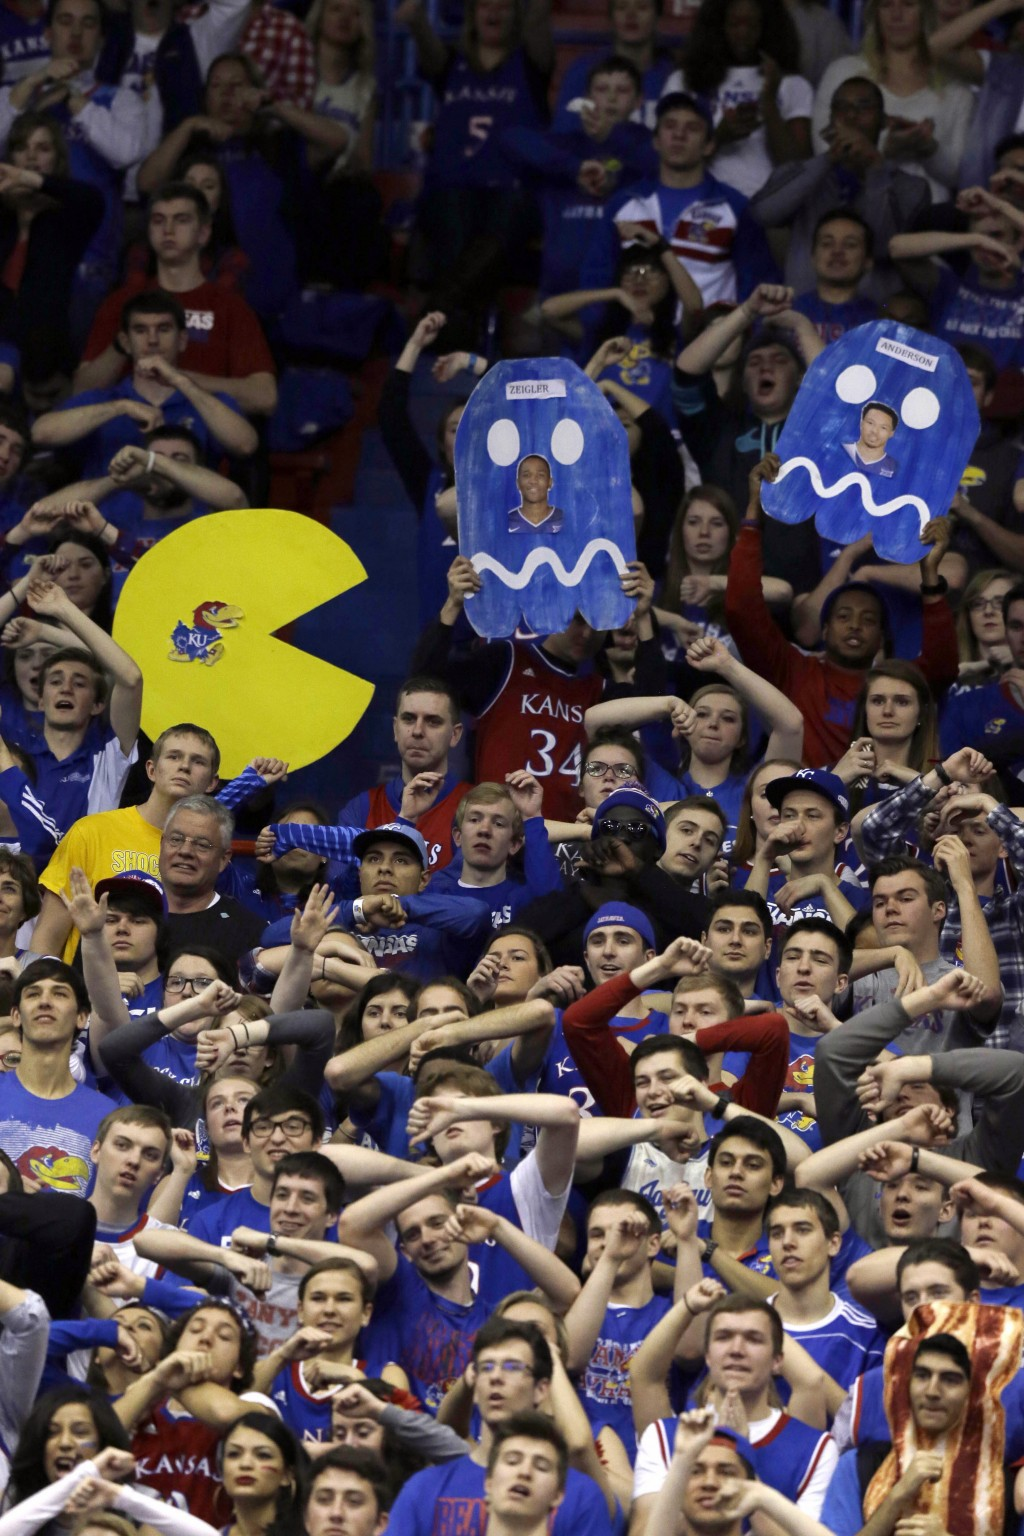 FILE- In this Feb. 21, 2015, file photo, Kansas fans cheer during the first half of an NCAA college basketball game against TCU at Allen Fieldhouse in...